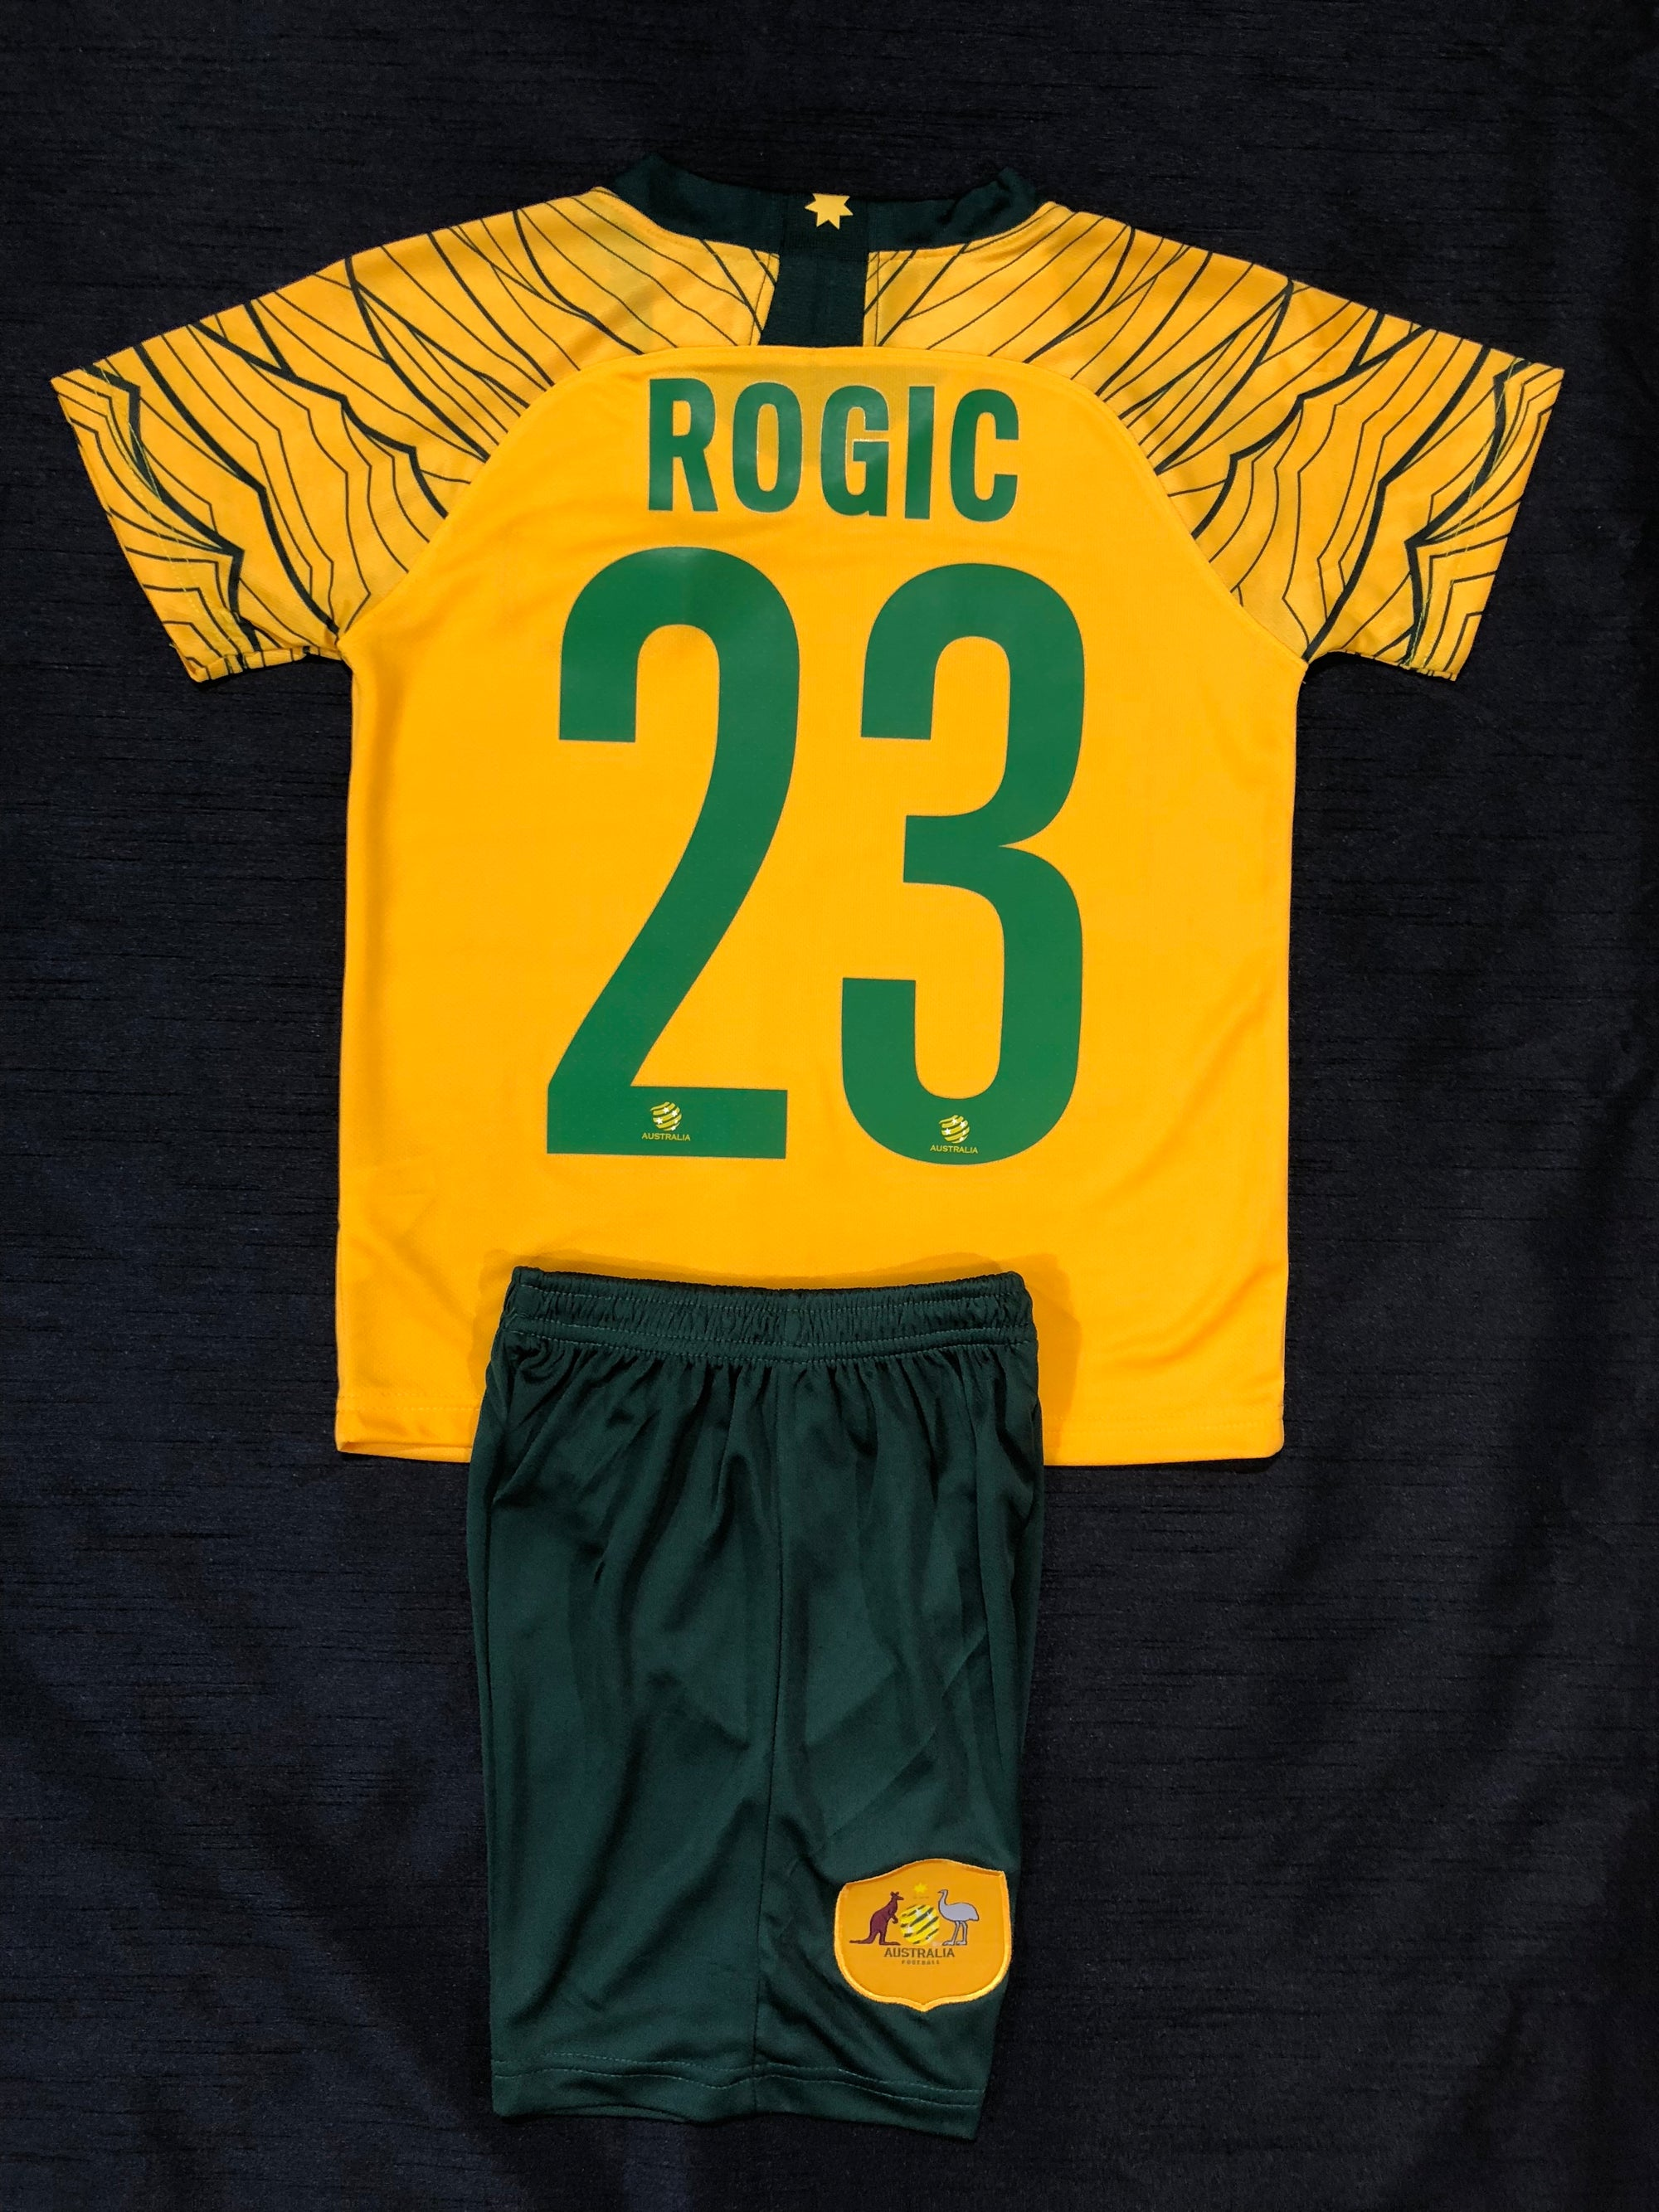 """ROGIC 23"" SOCCEROO HOME WORLD CUP 2018 KIDS 2-PIECE SOCCER SET"